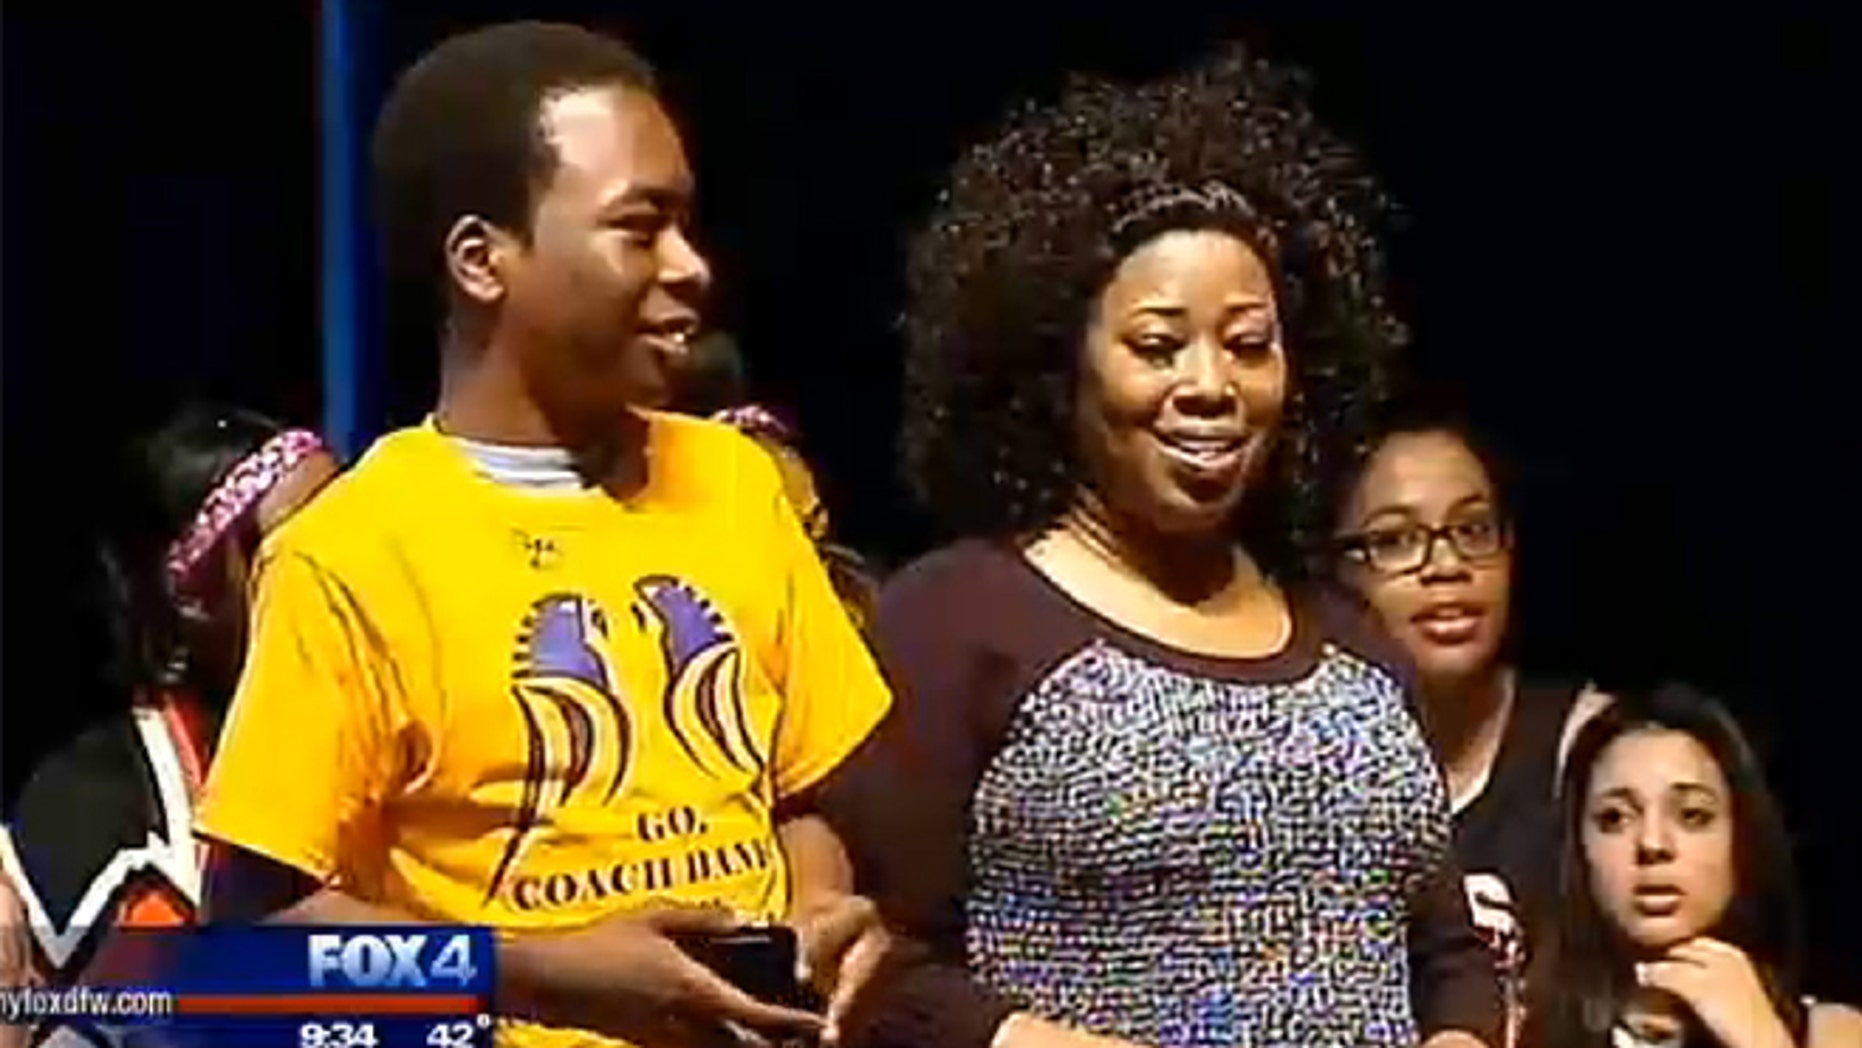 Banks Graham, 16, and his mother Edna listen to a special message from Kobe Bryant.